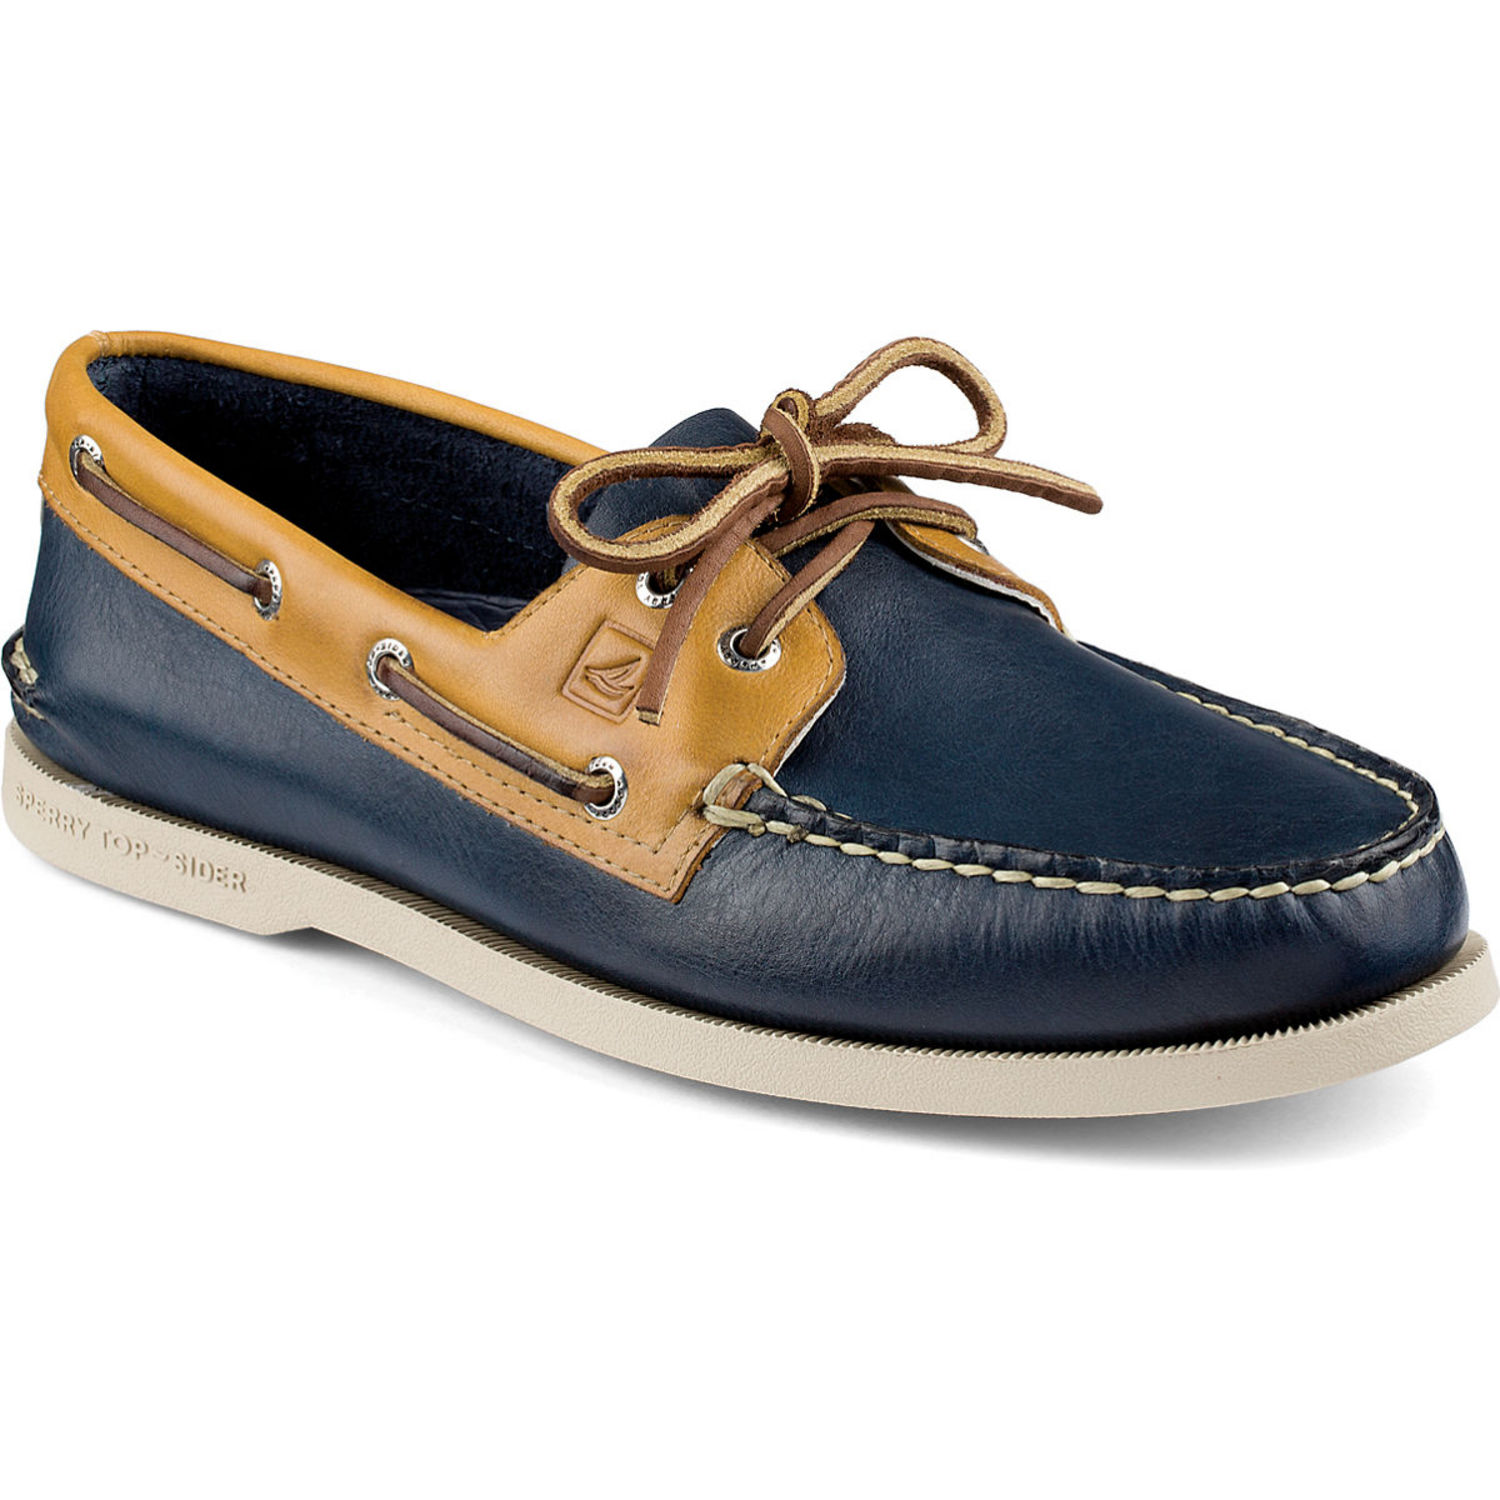 a64e4fe22c1 Sperry Top-Sider Men s Authentic Original Two-Tone 2-Eye Boat Shoes